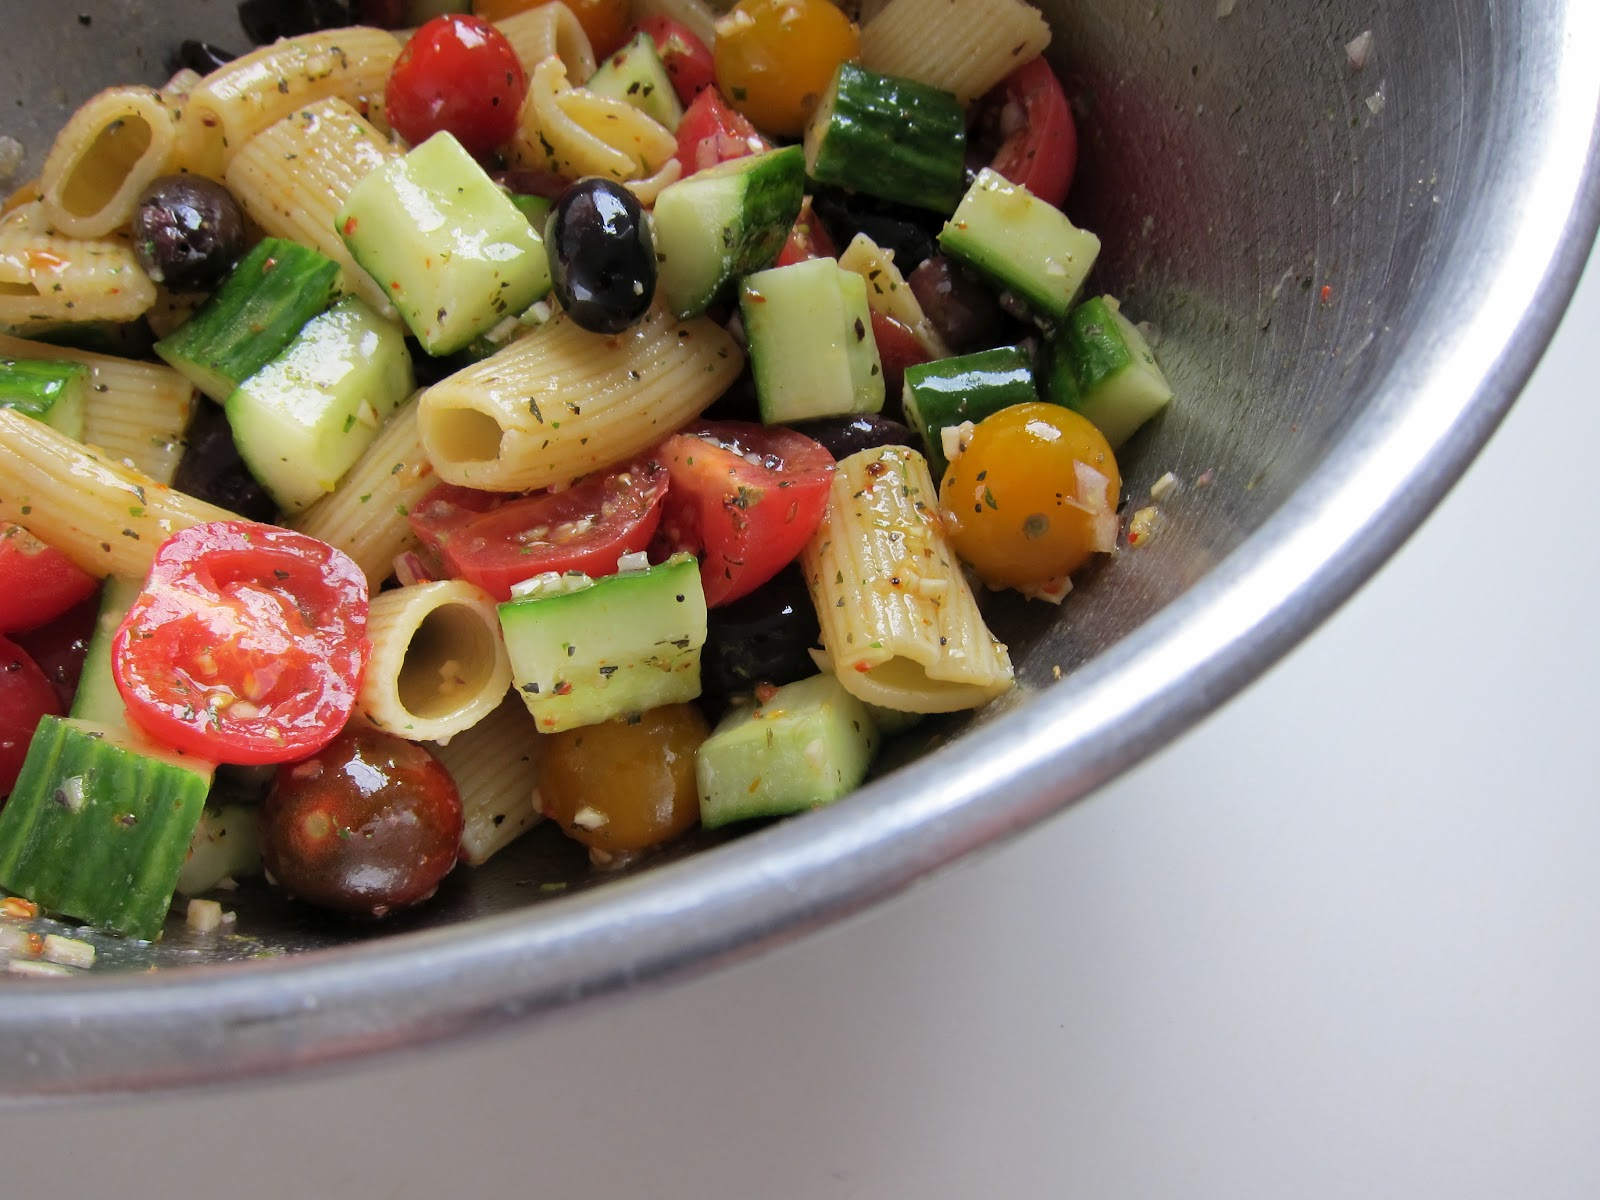 Vegetarian Detective: The Case of Tomato Cucumber Pasta Salad